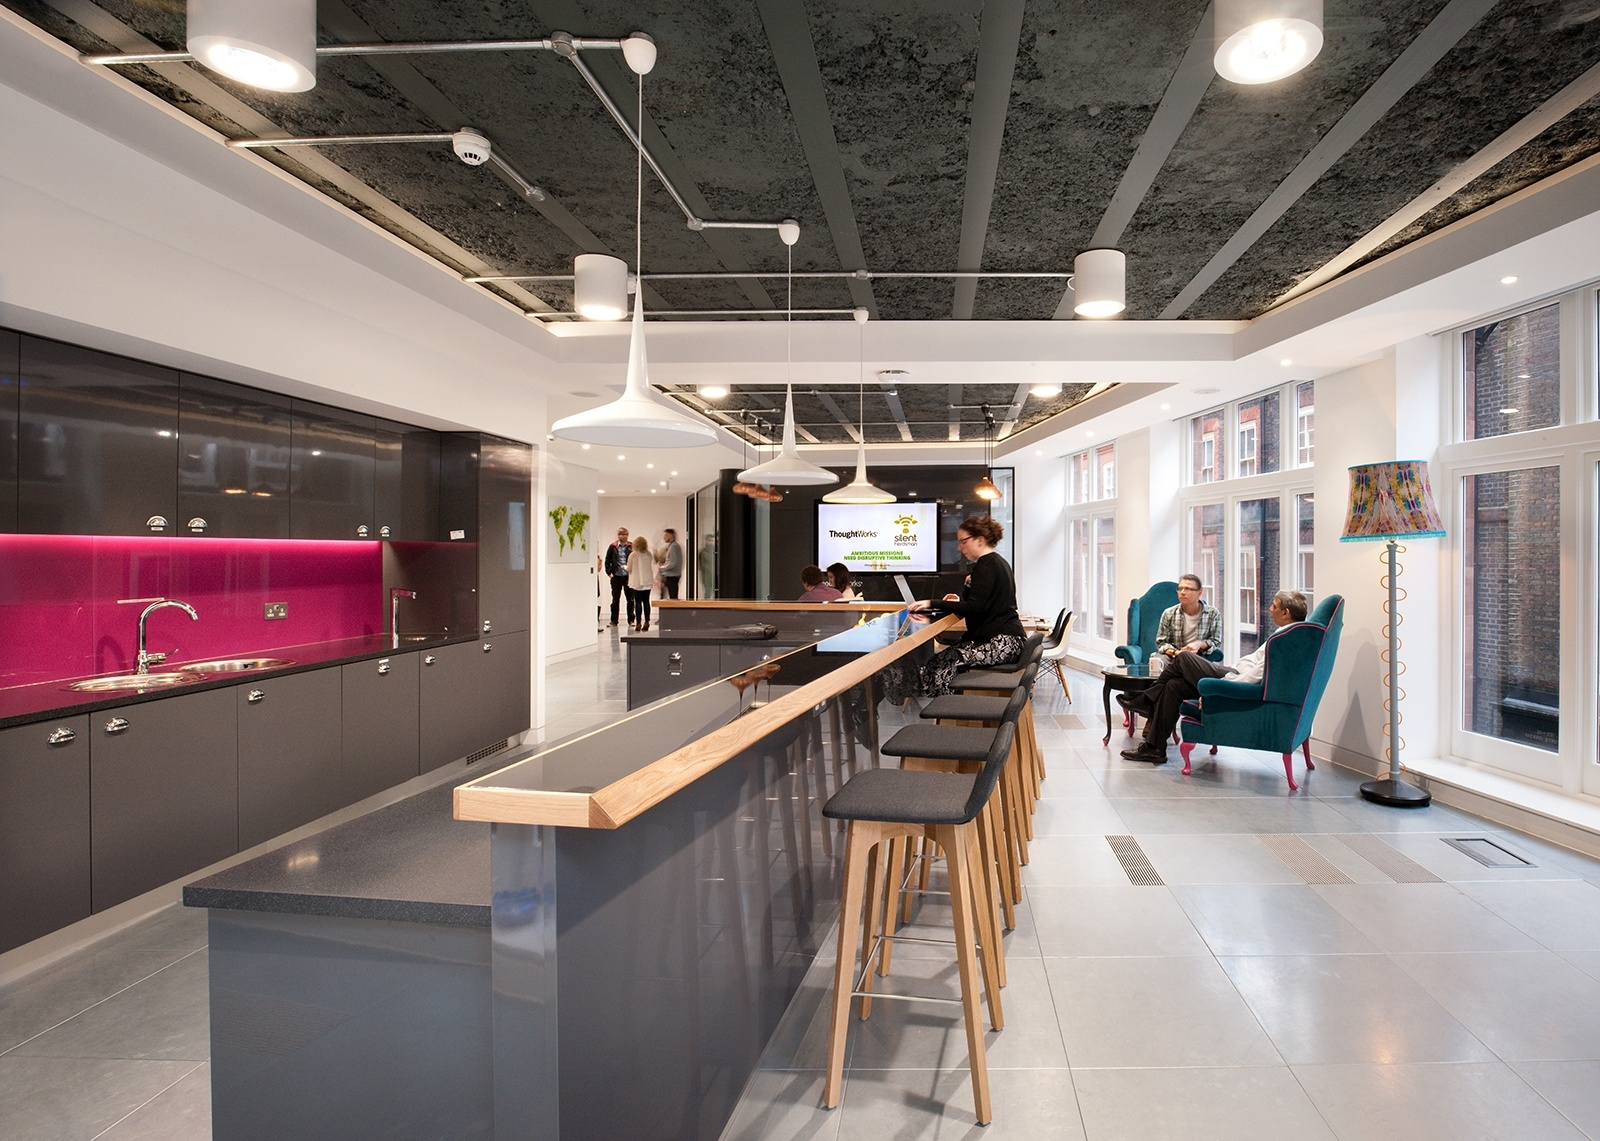 A look inside thoughtworks cool london office officelovin 39 for Office design works